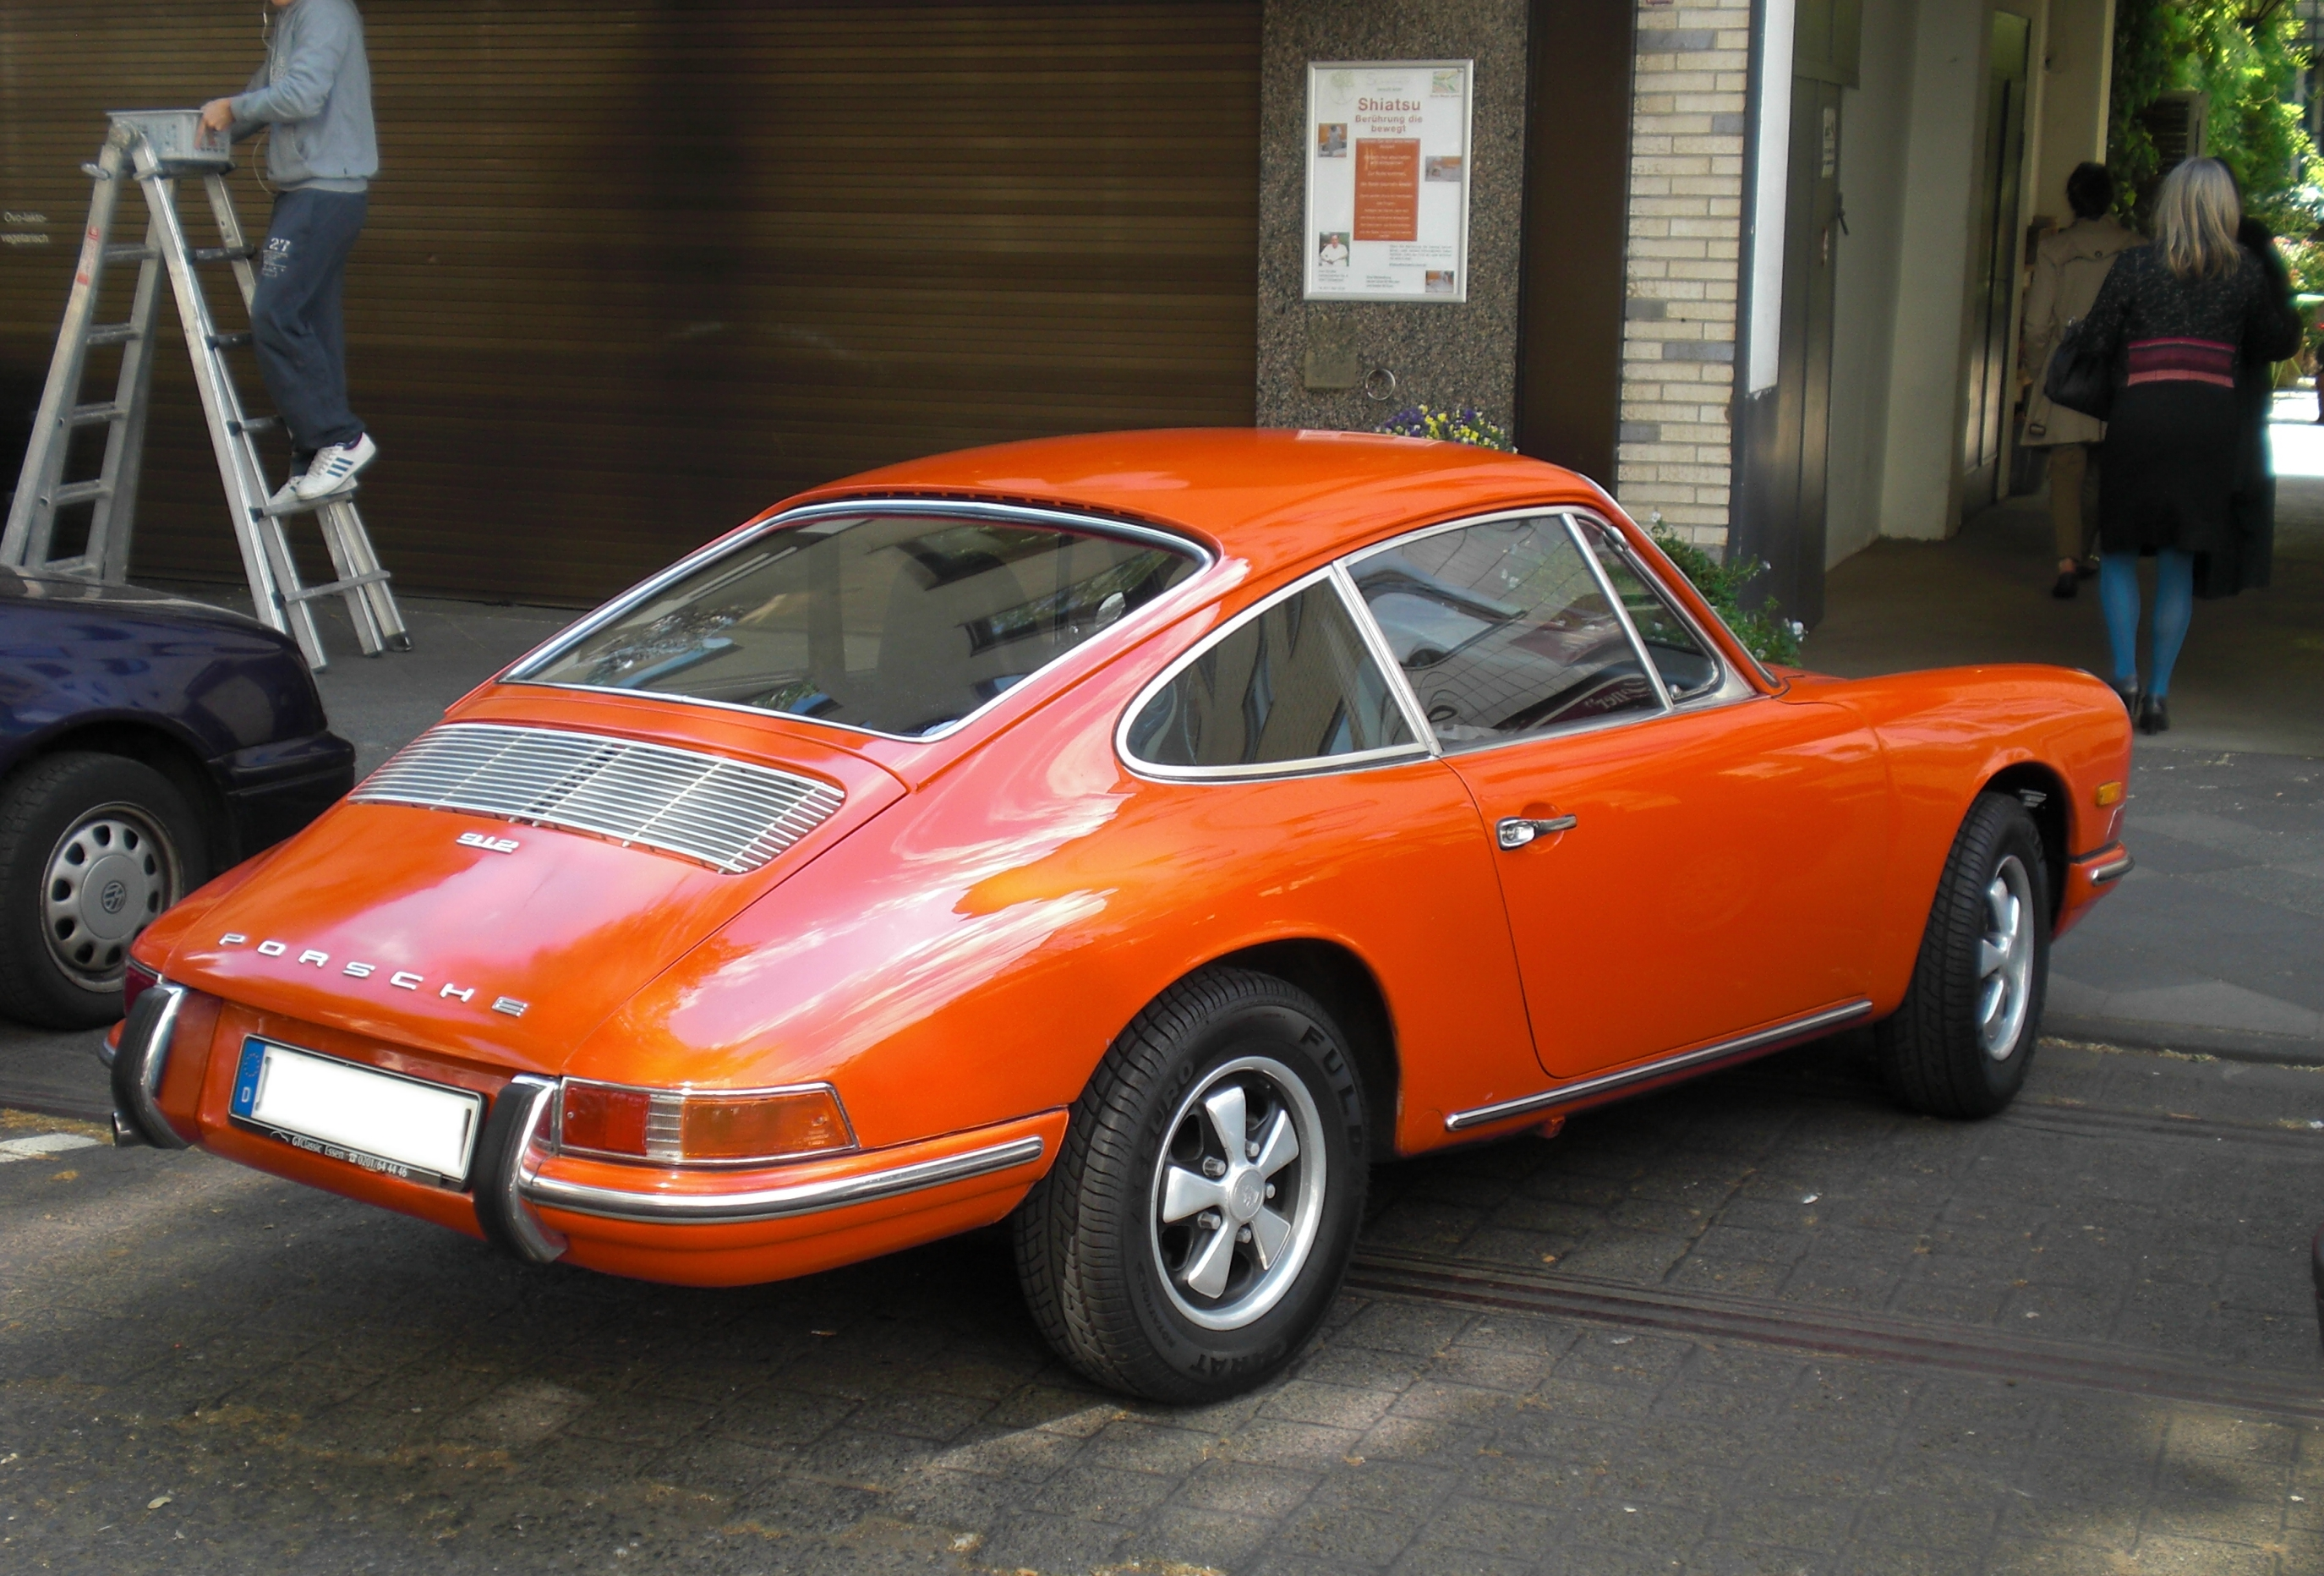 File:Porsche 912 912 1965-1969 0000 backright 2011-05-156 U